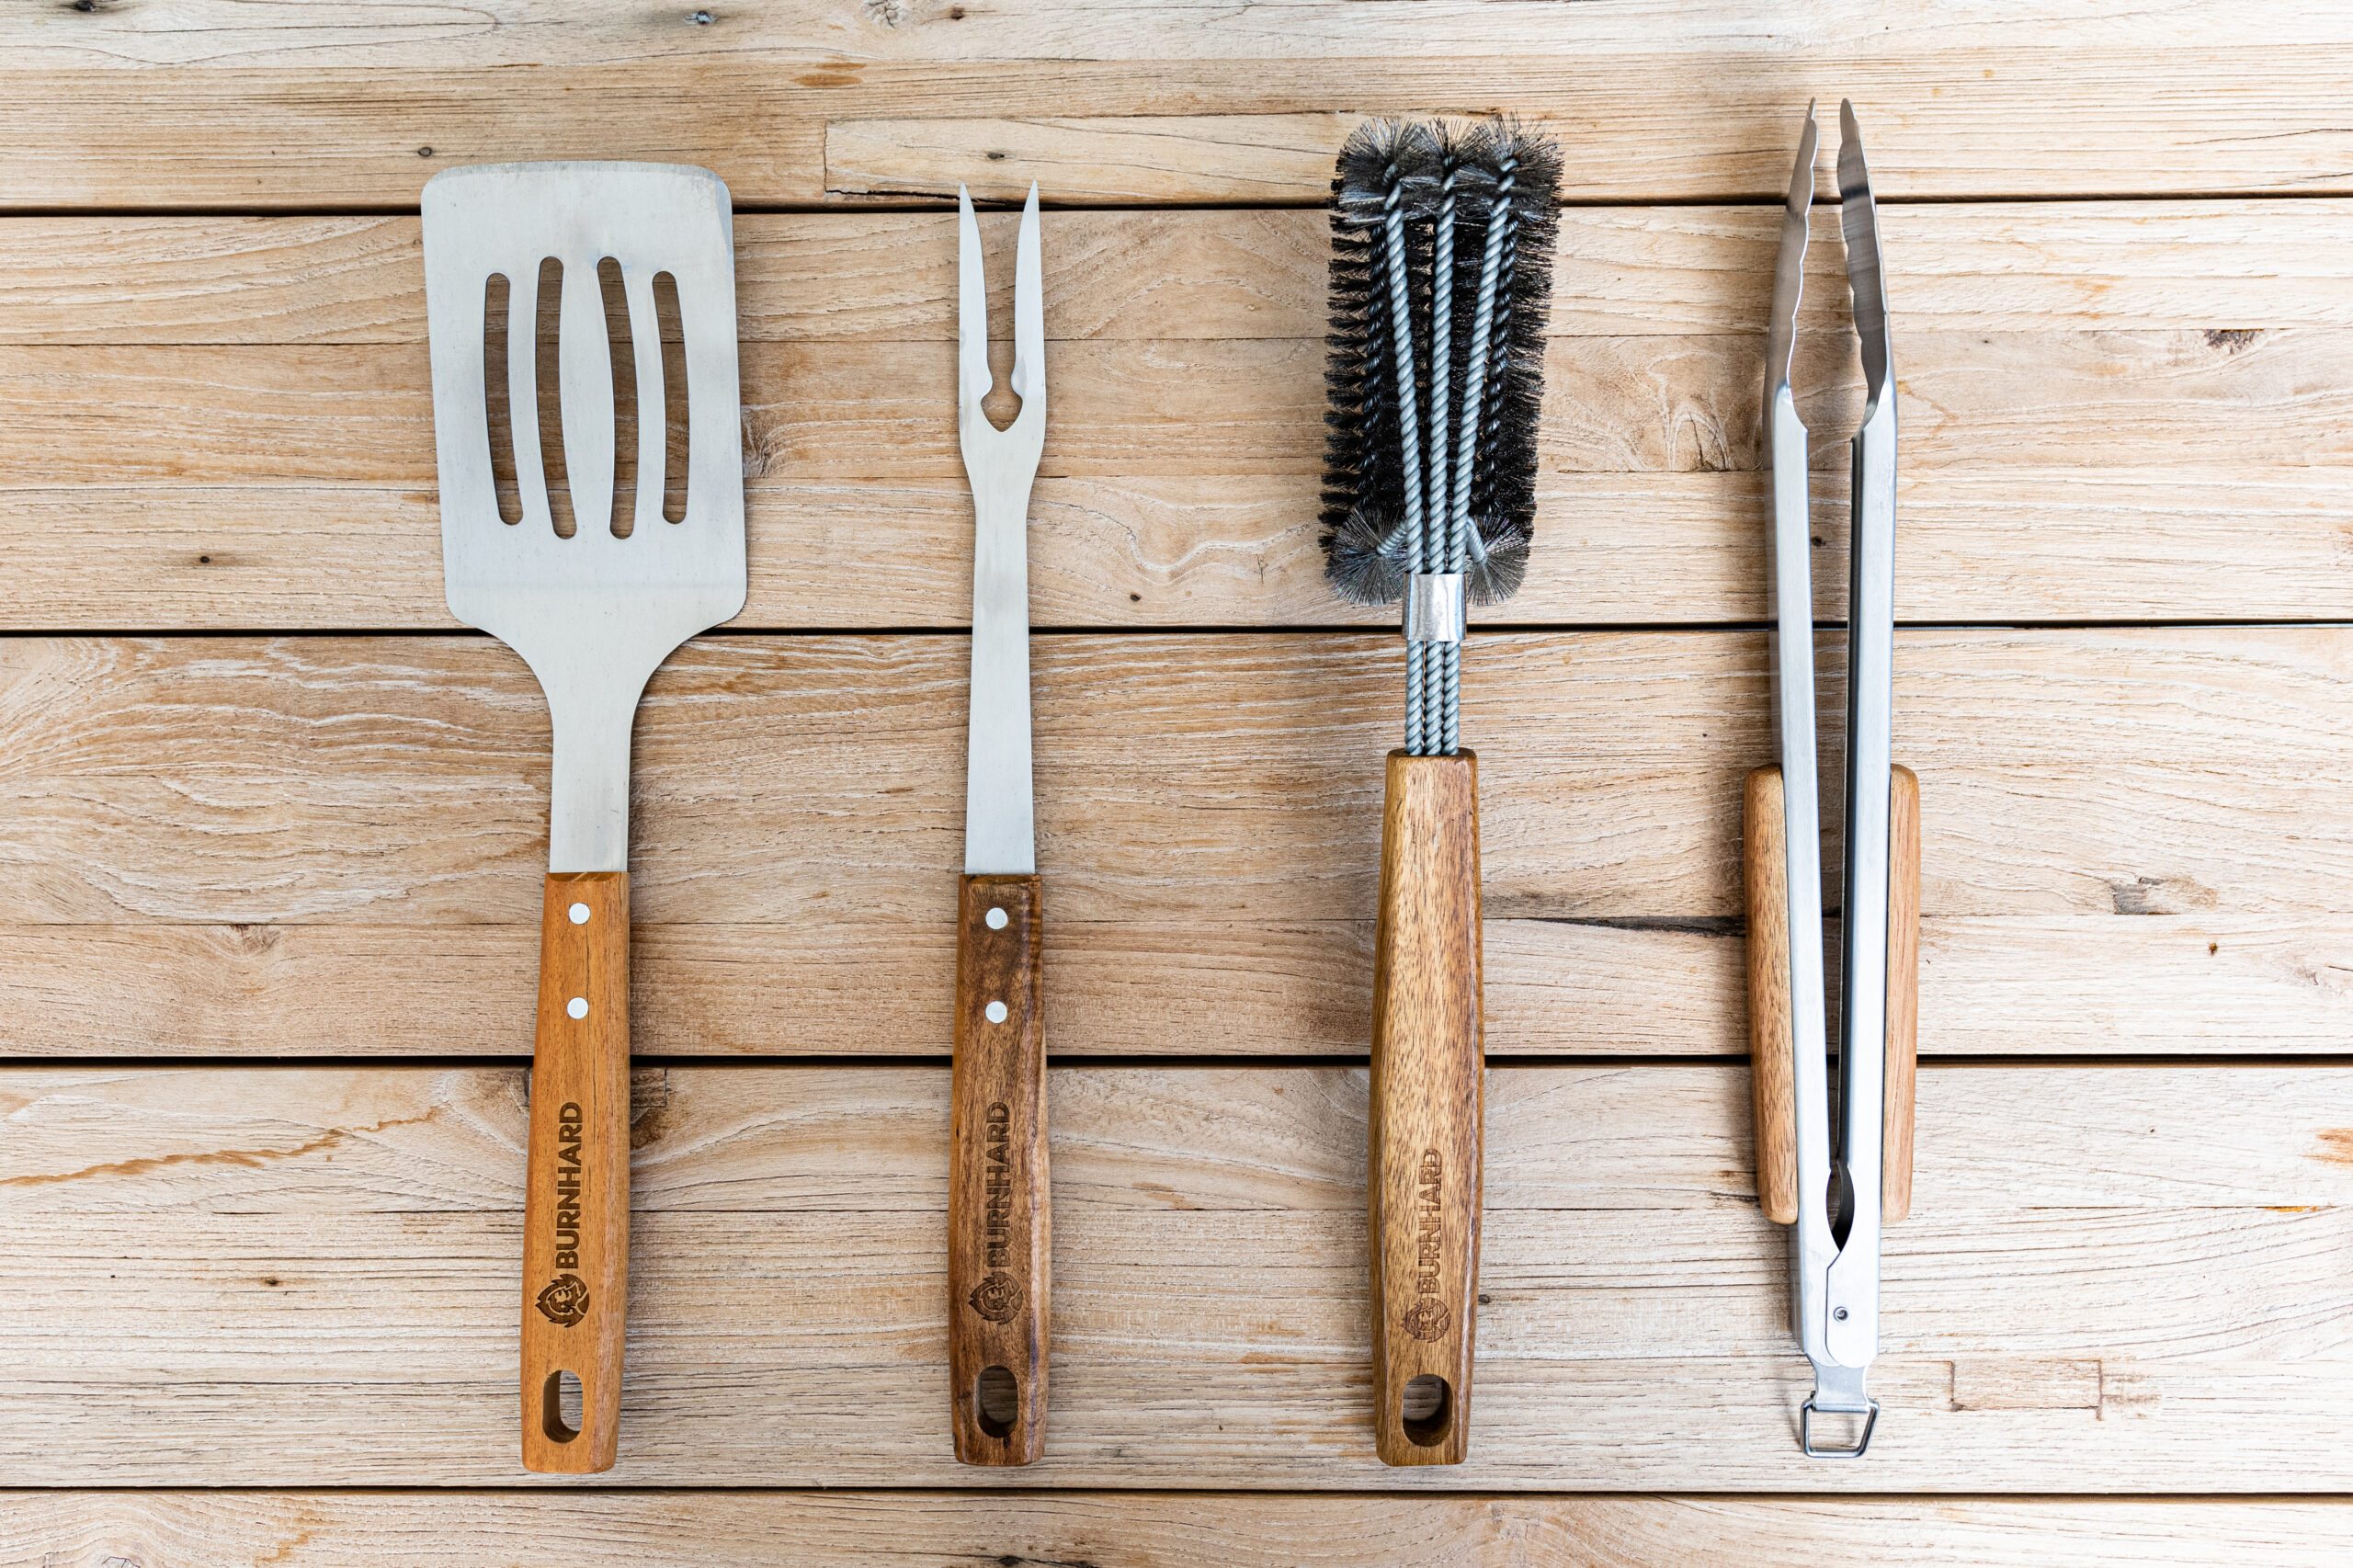 Noble barbecue cutlery made of acacia wood and stainless steel by Burnhard